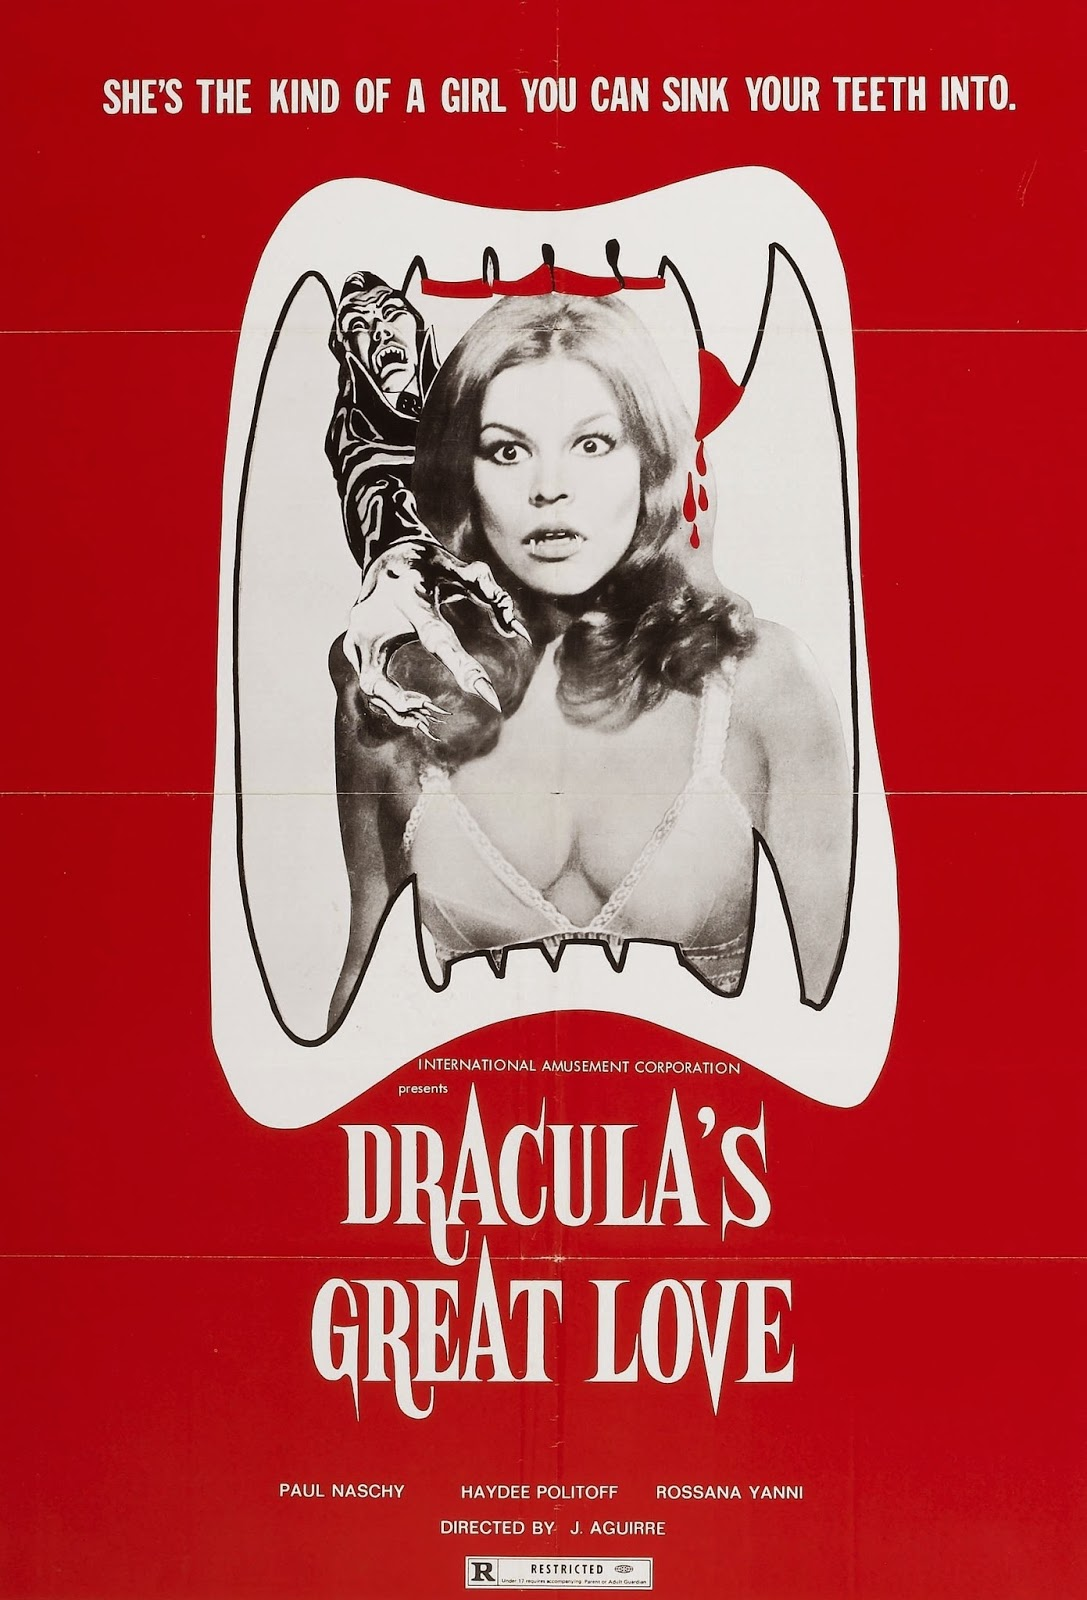 http://www.vampirebeauties.com/2014/09/vampiress-review-draculas-great-love.html